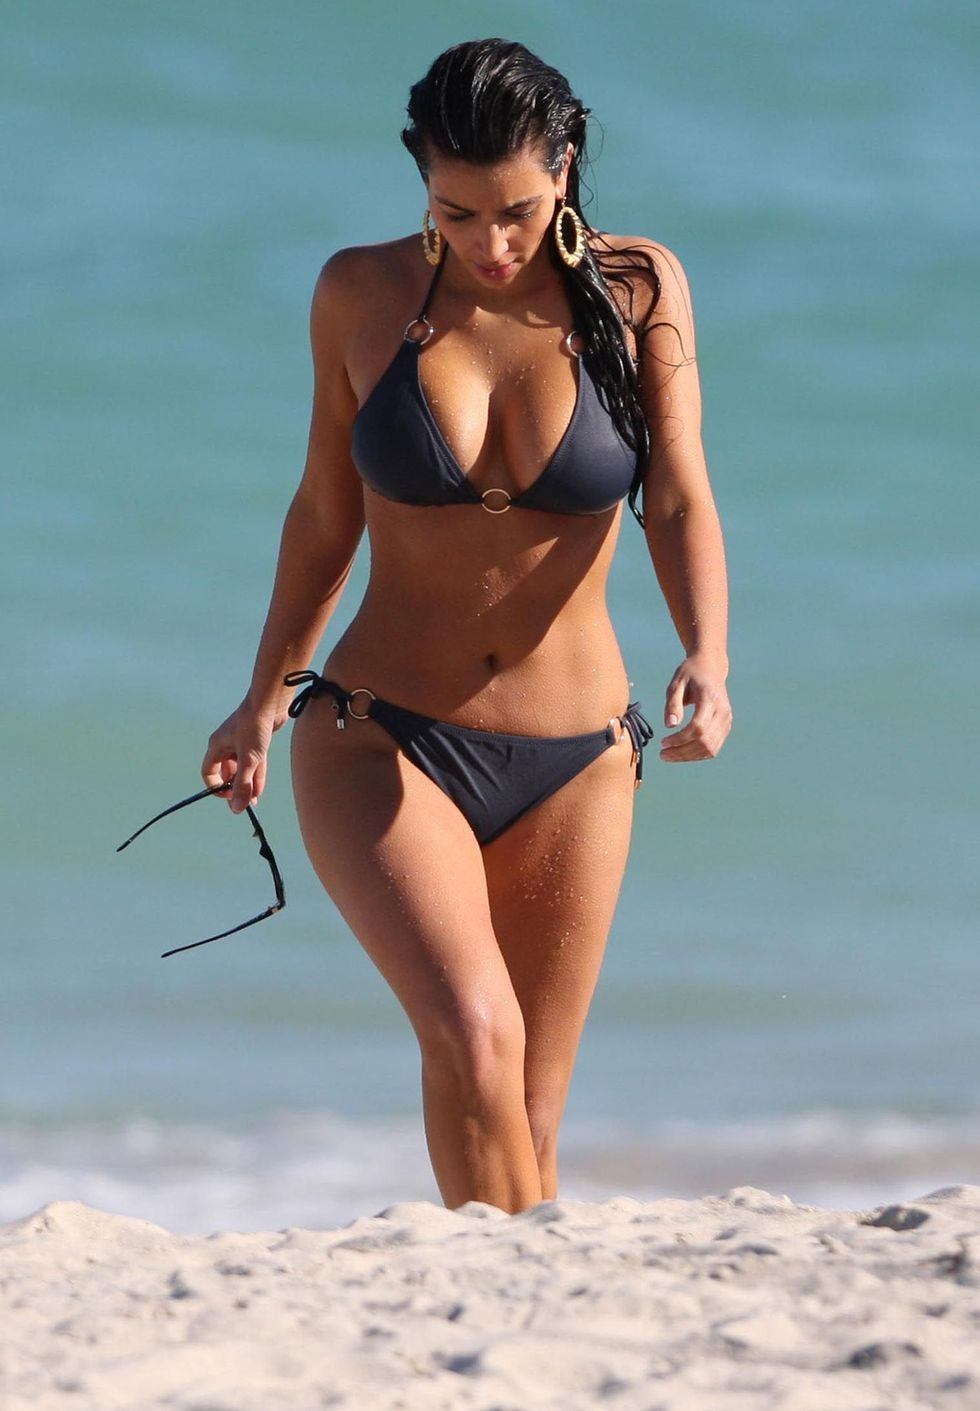 kim-kardashian-bikini-candids-at-the-beach-in-miami-hq-01